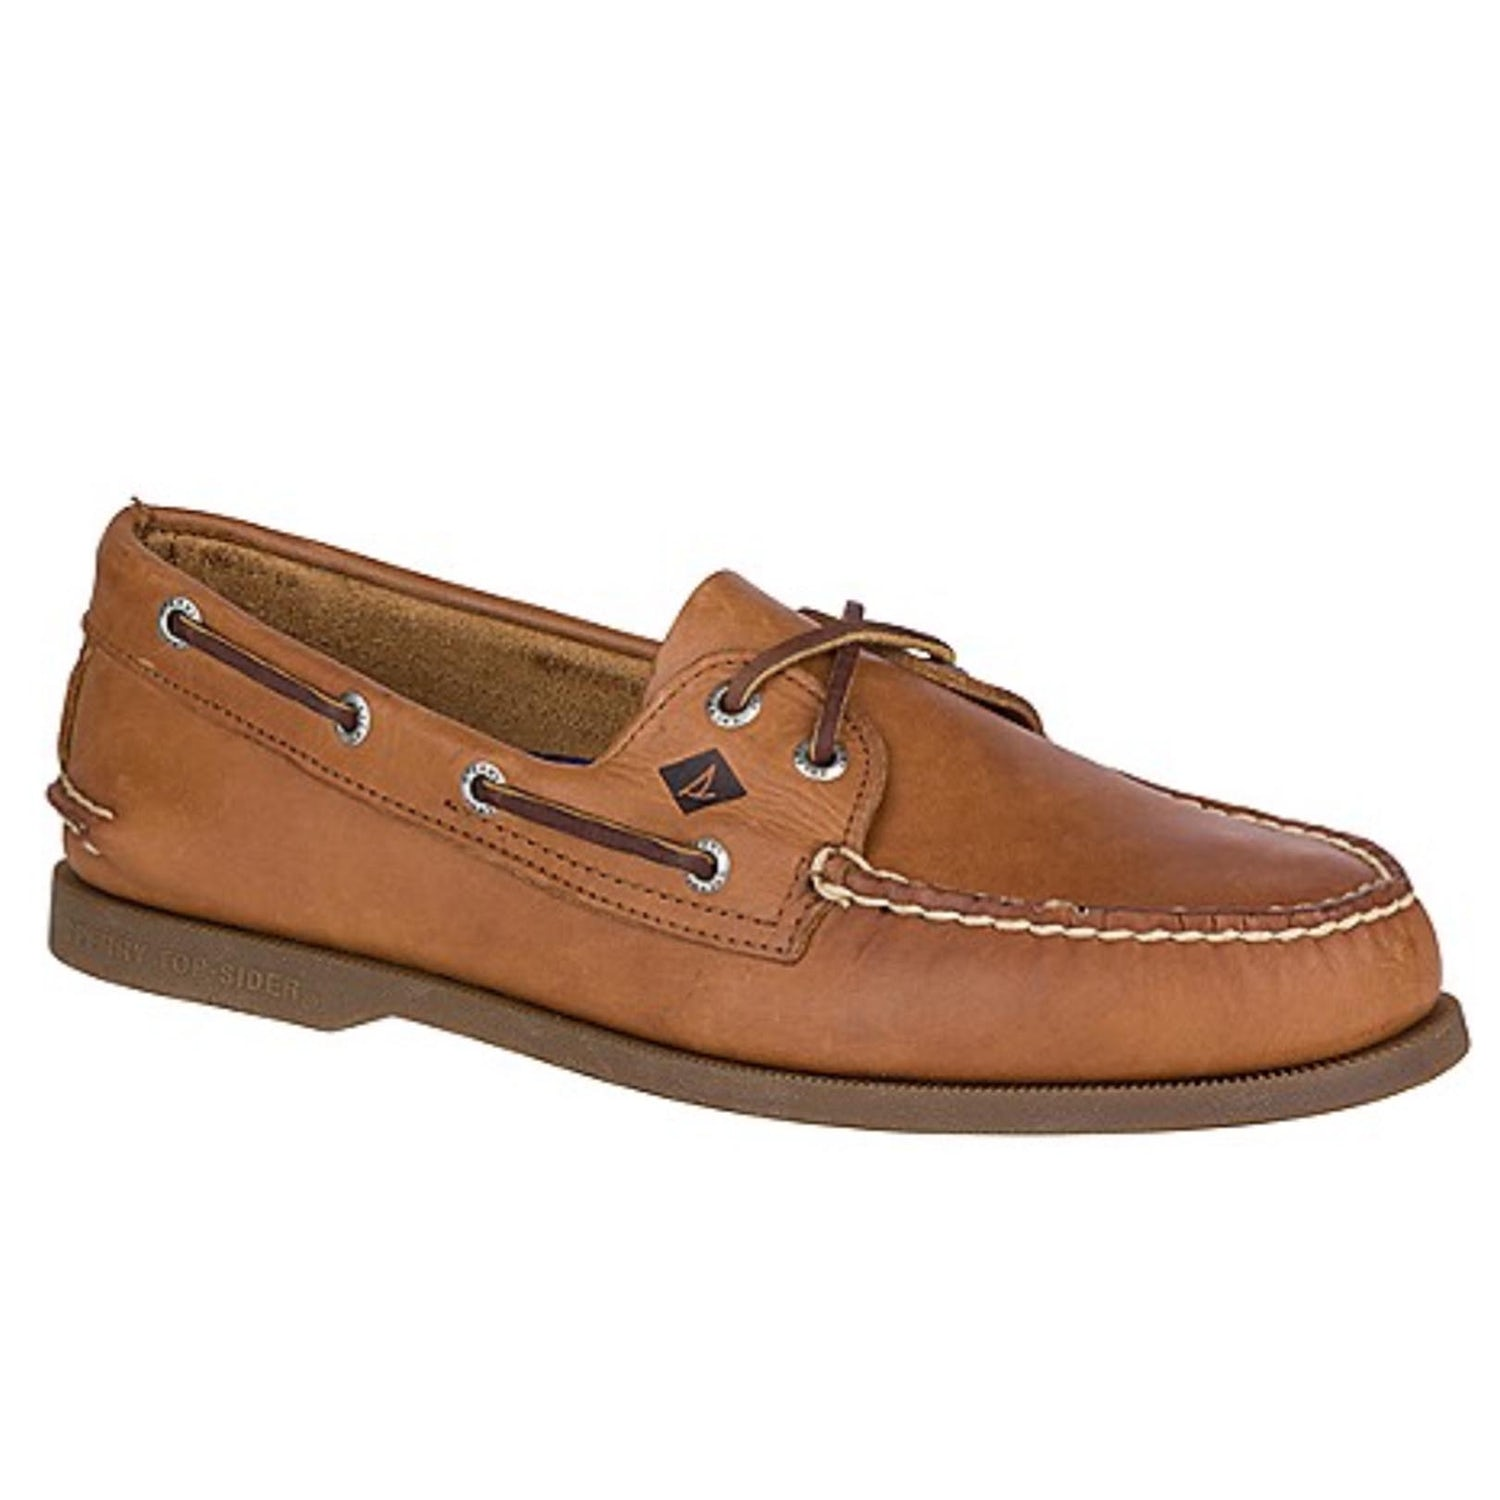 slipons  0004 Sperry%27s